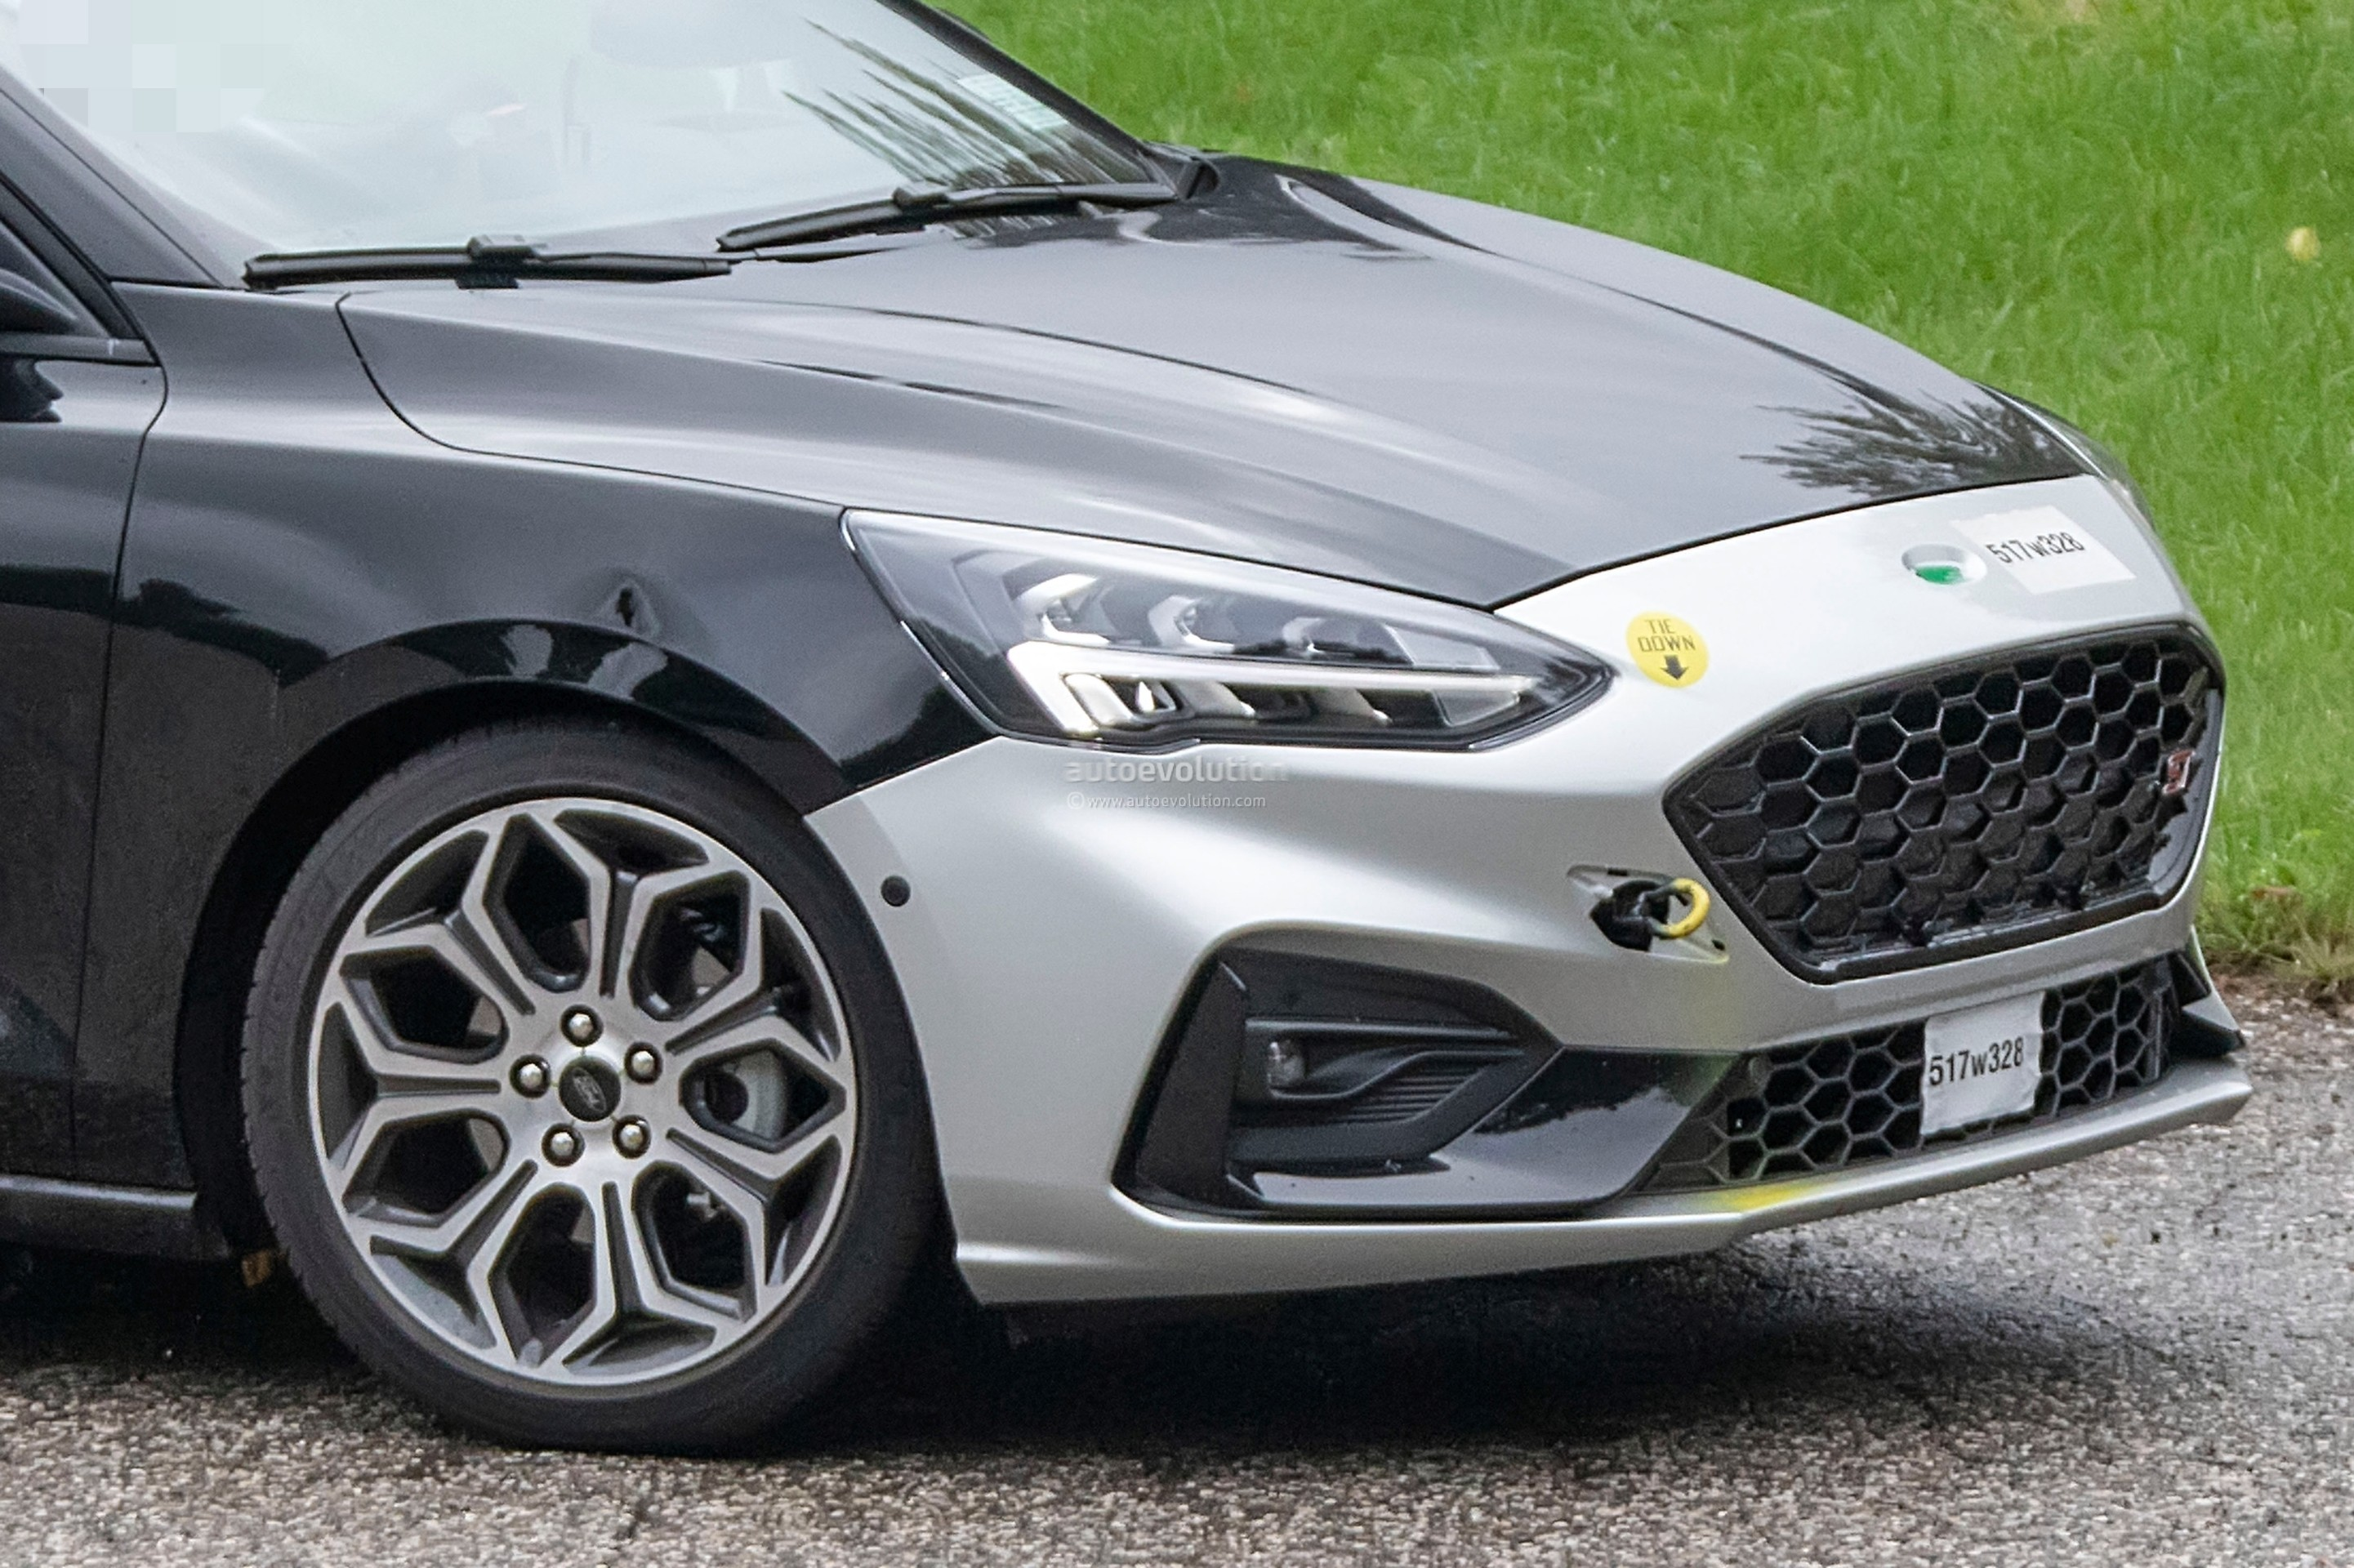 2022 Ford Focus ST Estate Spied With Minimal Changes